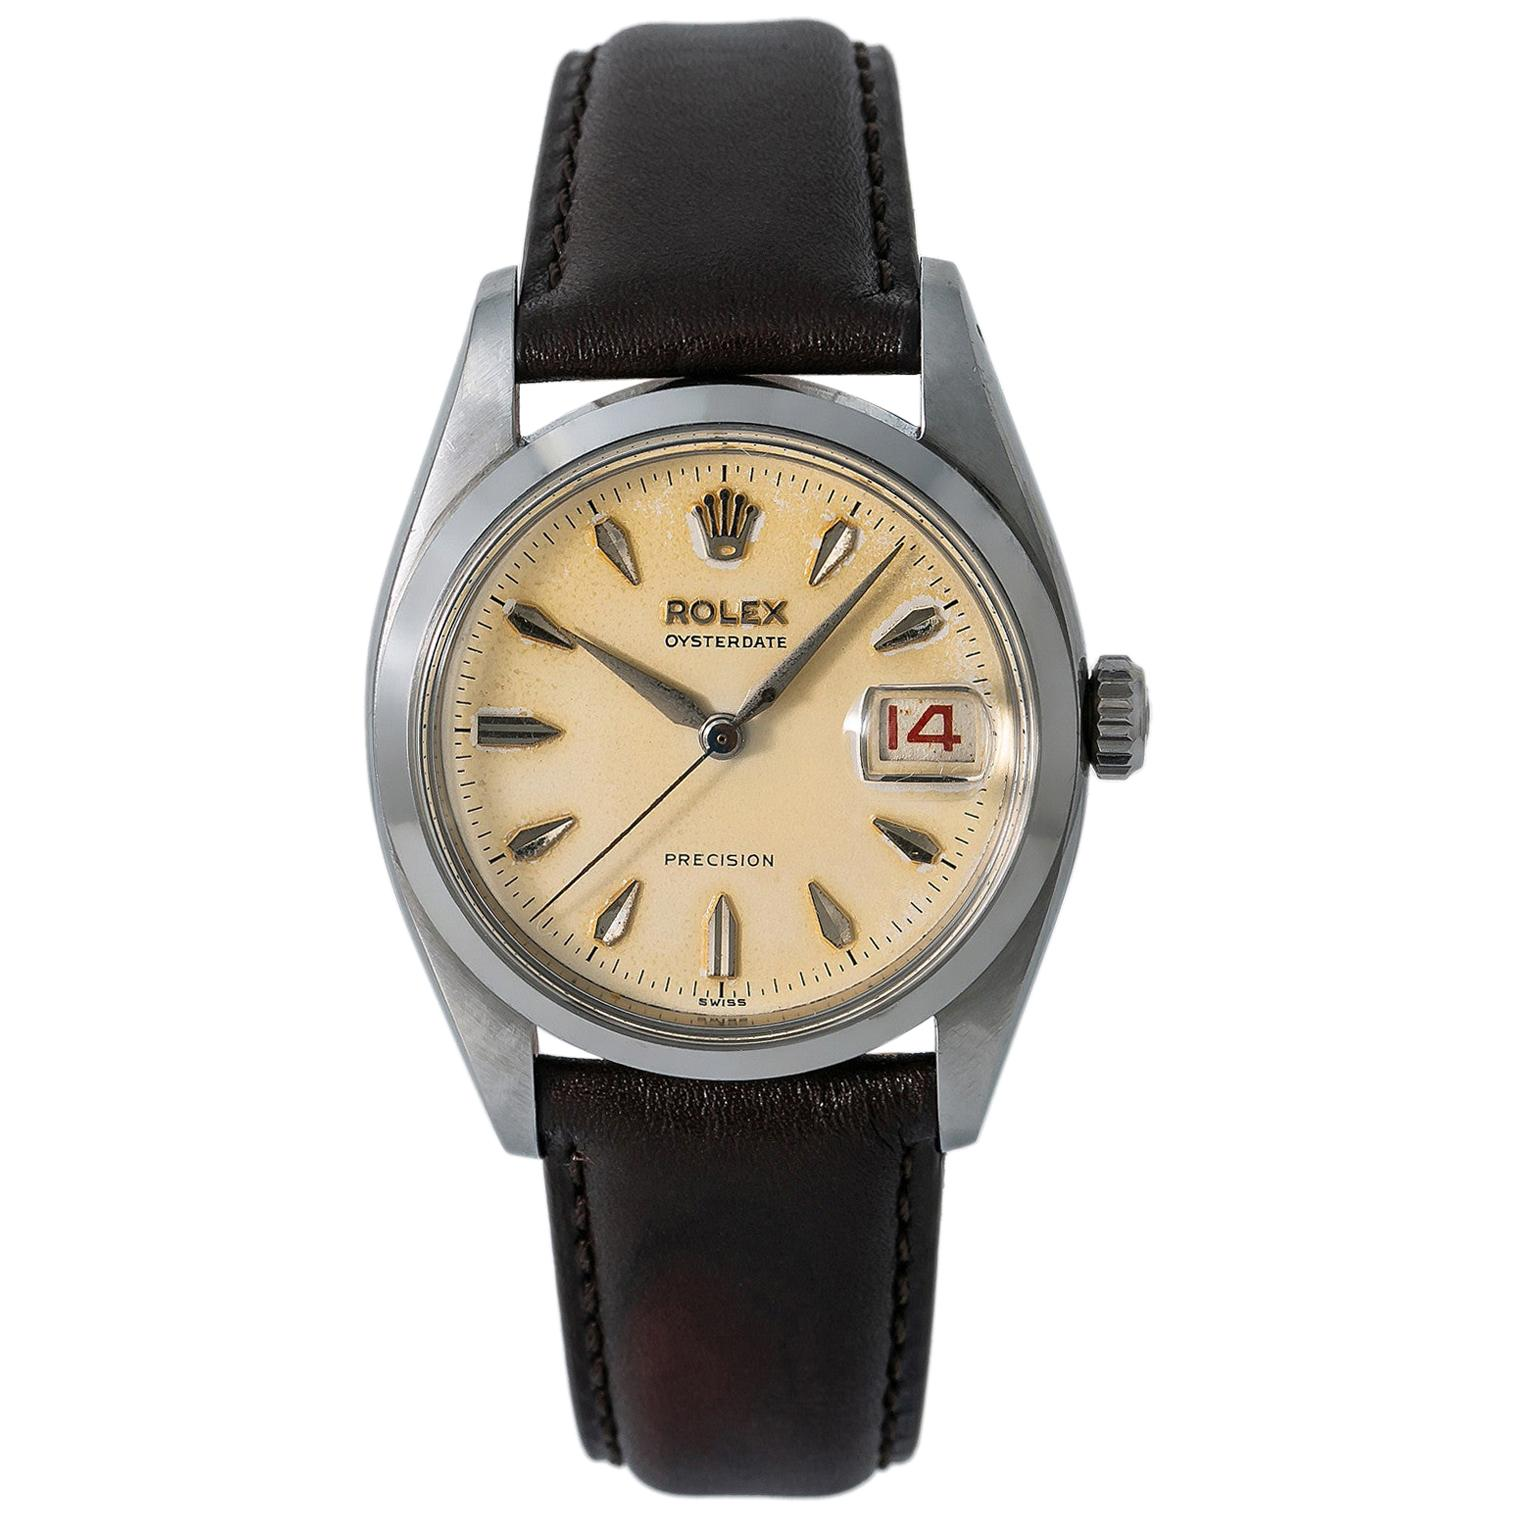 Rolex Oysterdate 6494, Silver Dial, Certified and Warranty